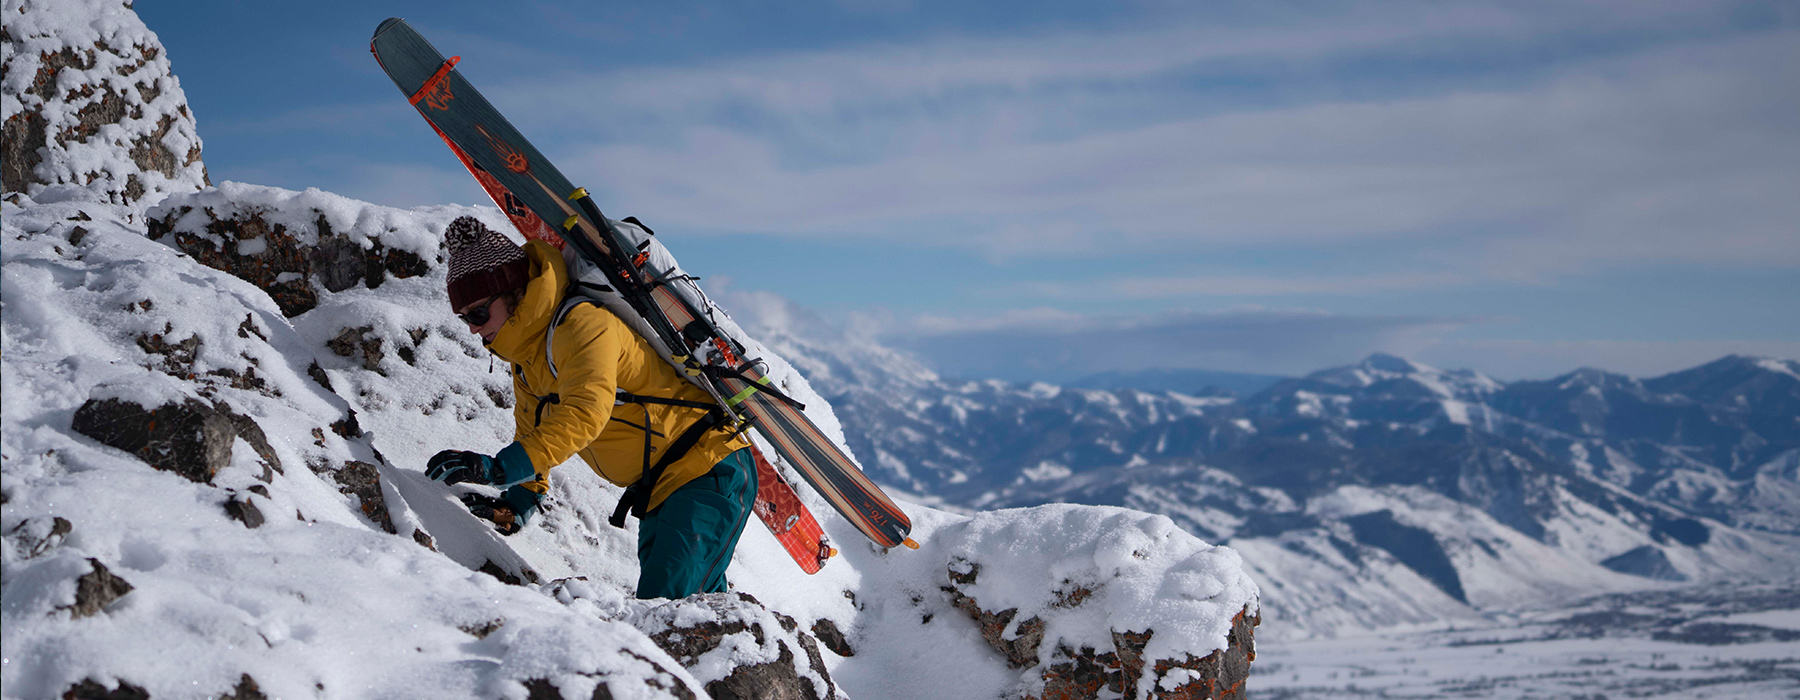 A backcountry skiier climbing some rock to get to the ultimate launching point